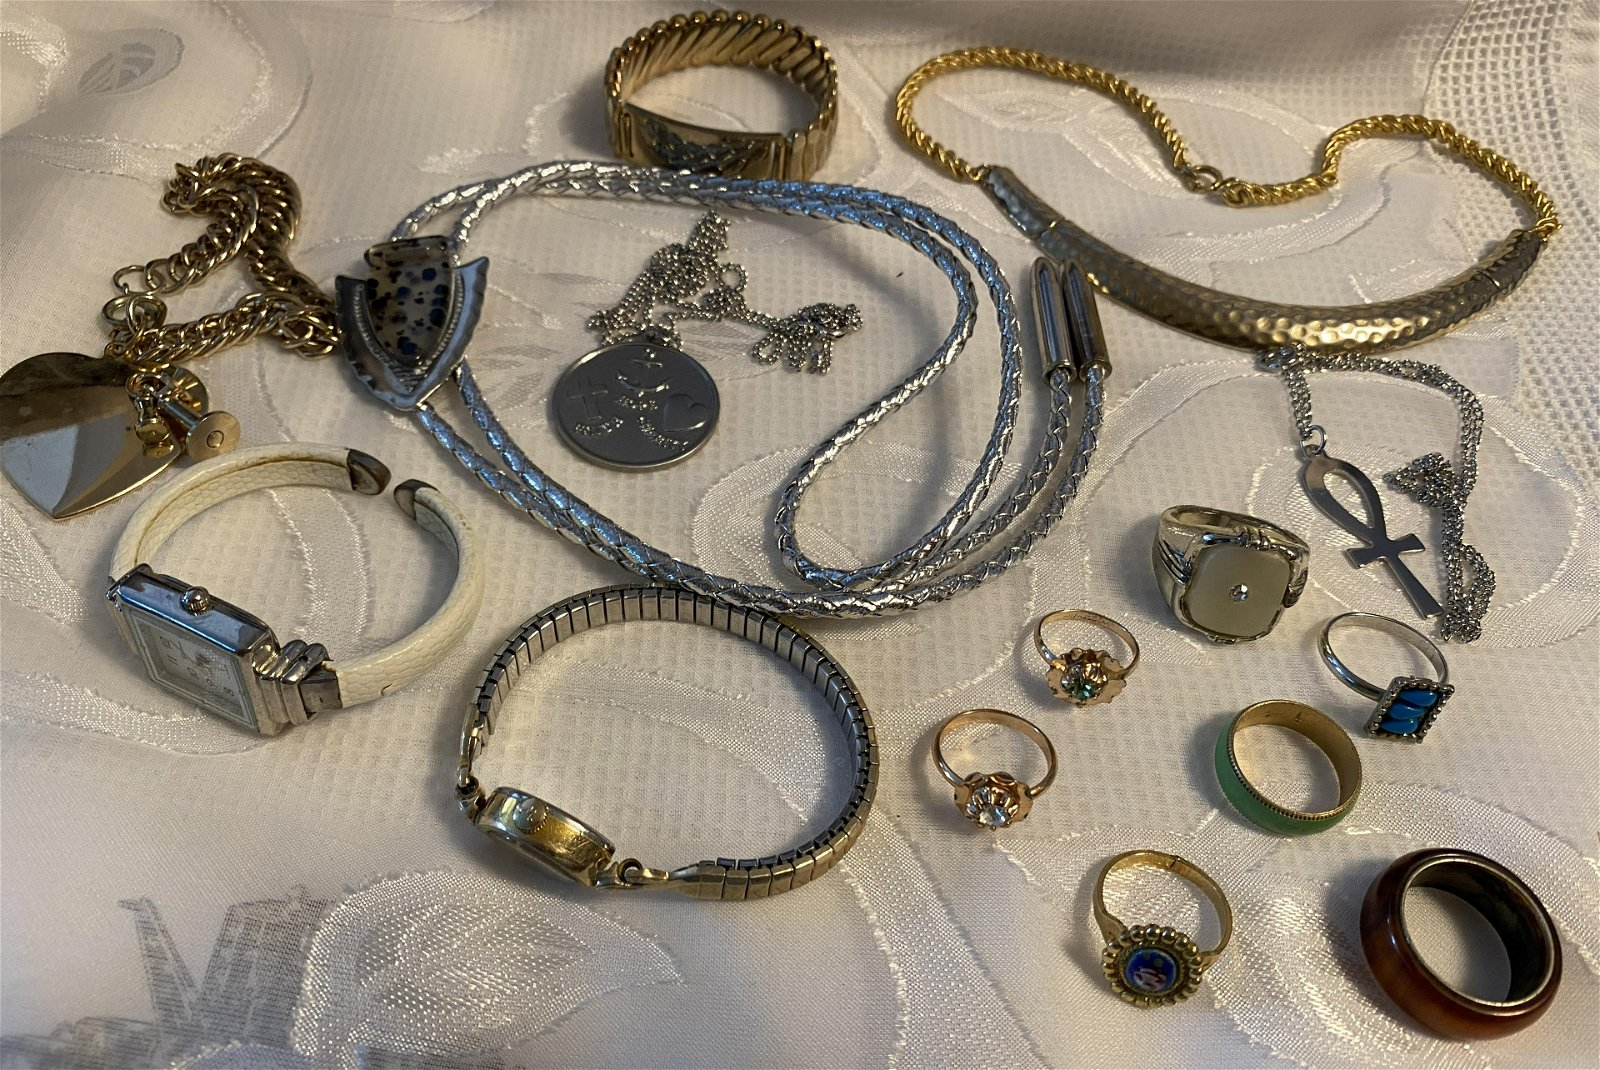 COLLECTION LOT OF VINTAGE JEWELRY - WATCHES, RINGS,